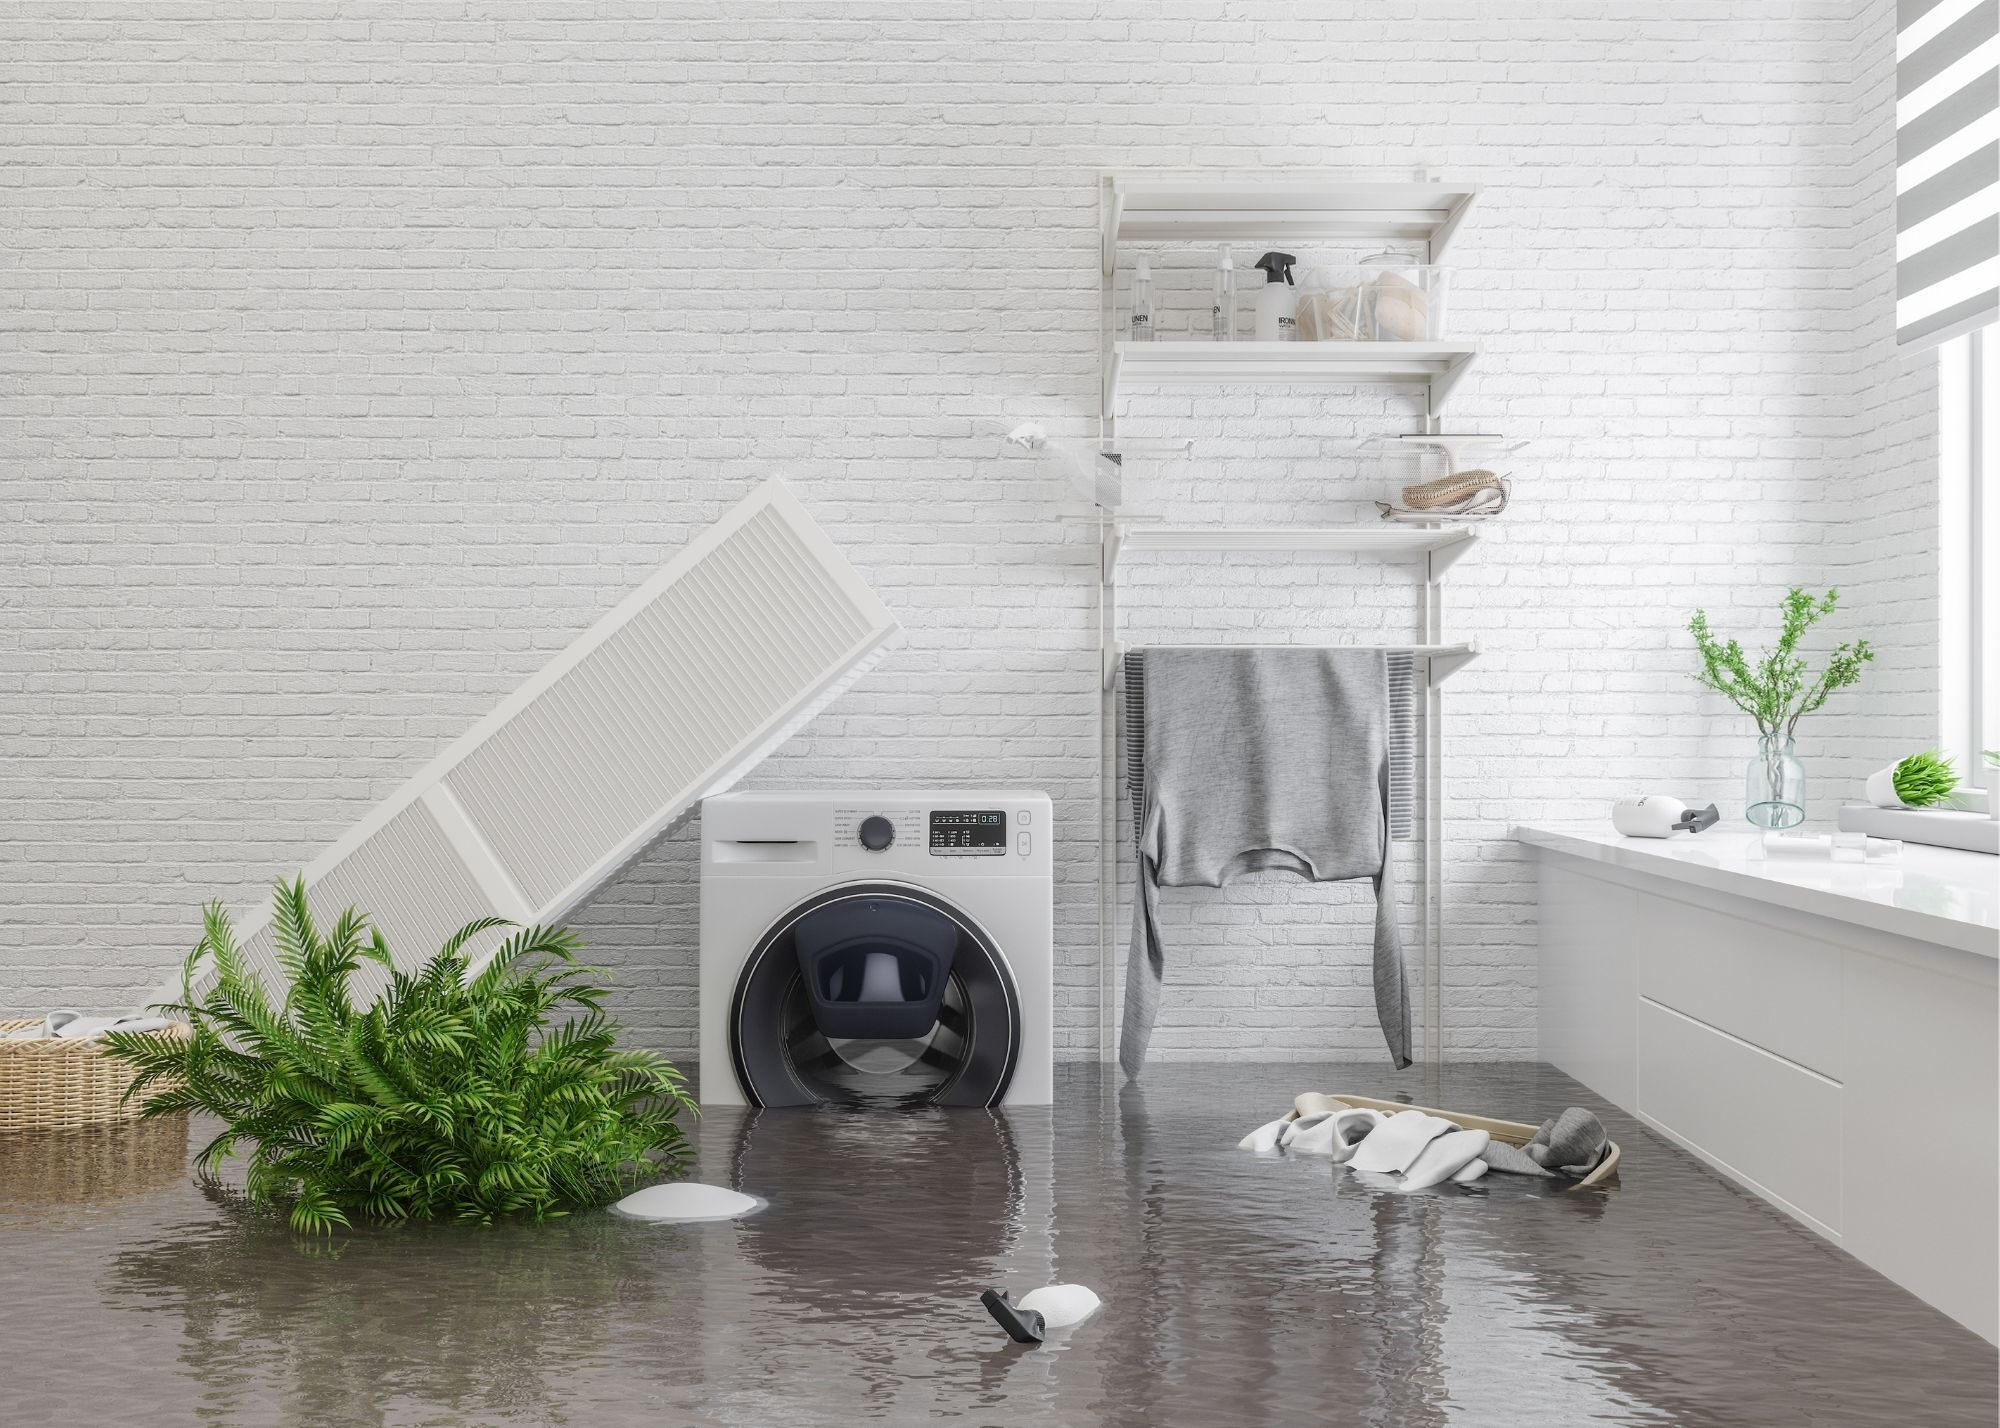 Water Damage Experts of Culver City